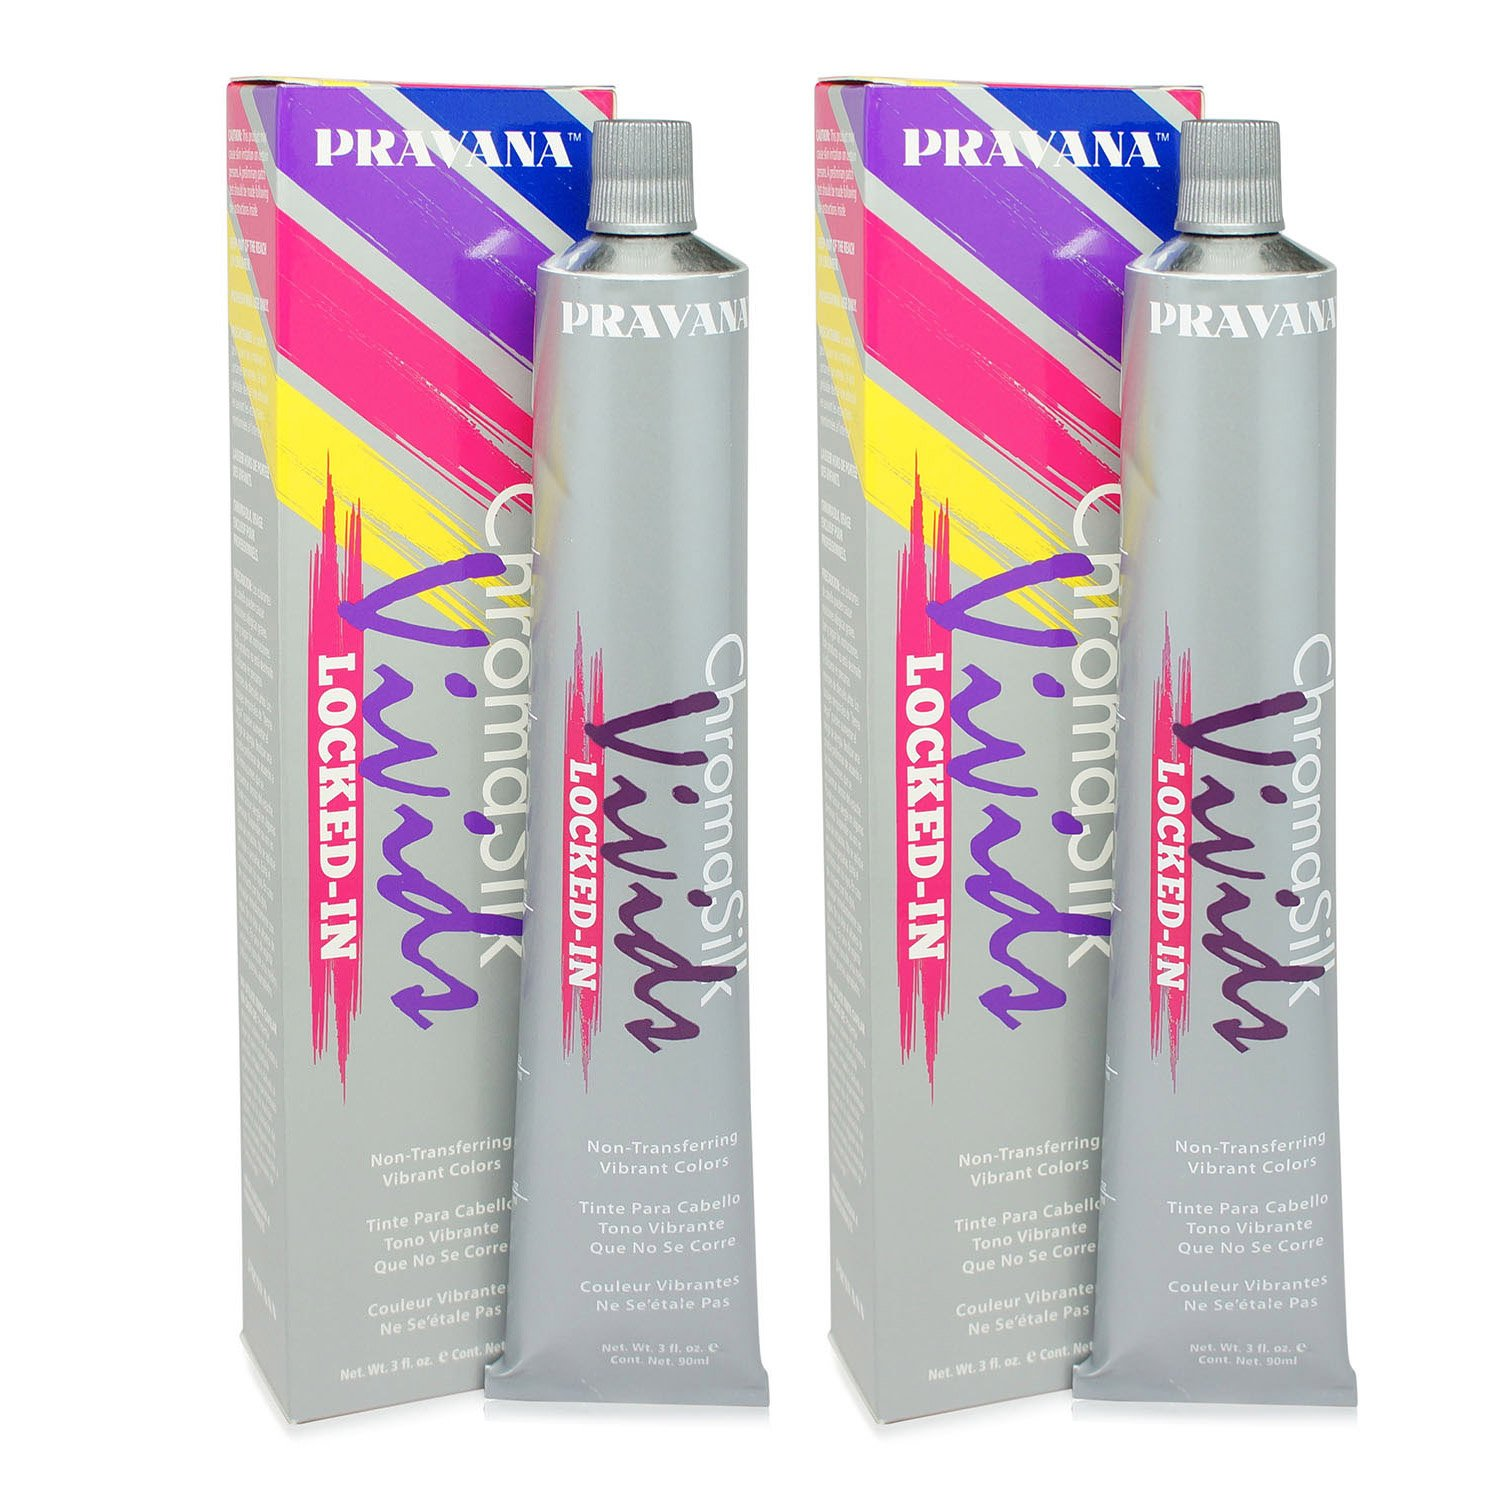 Pravana ChromaSilk Vivids (Locked in Blue), 3 Fl 0z - 2 Pack by Pravana (Image #1)